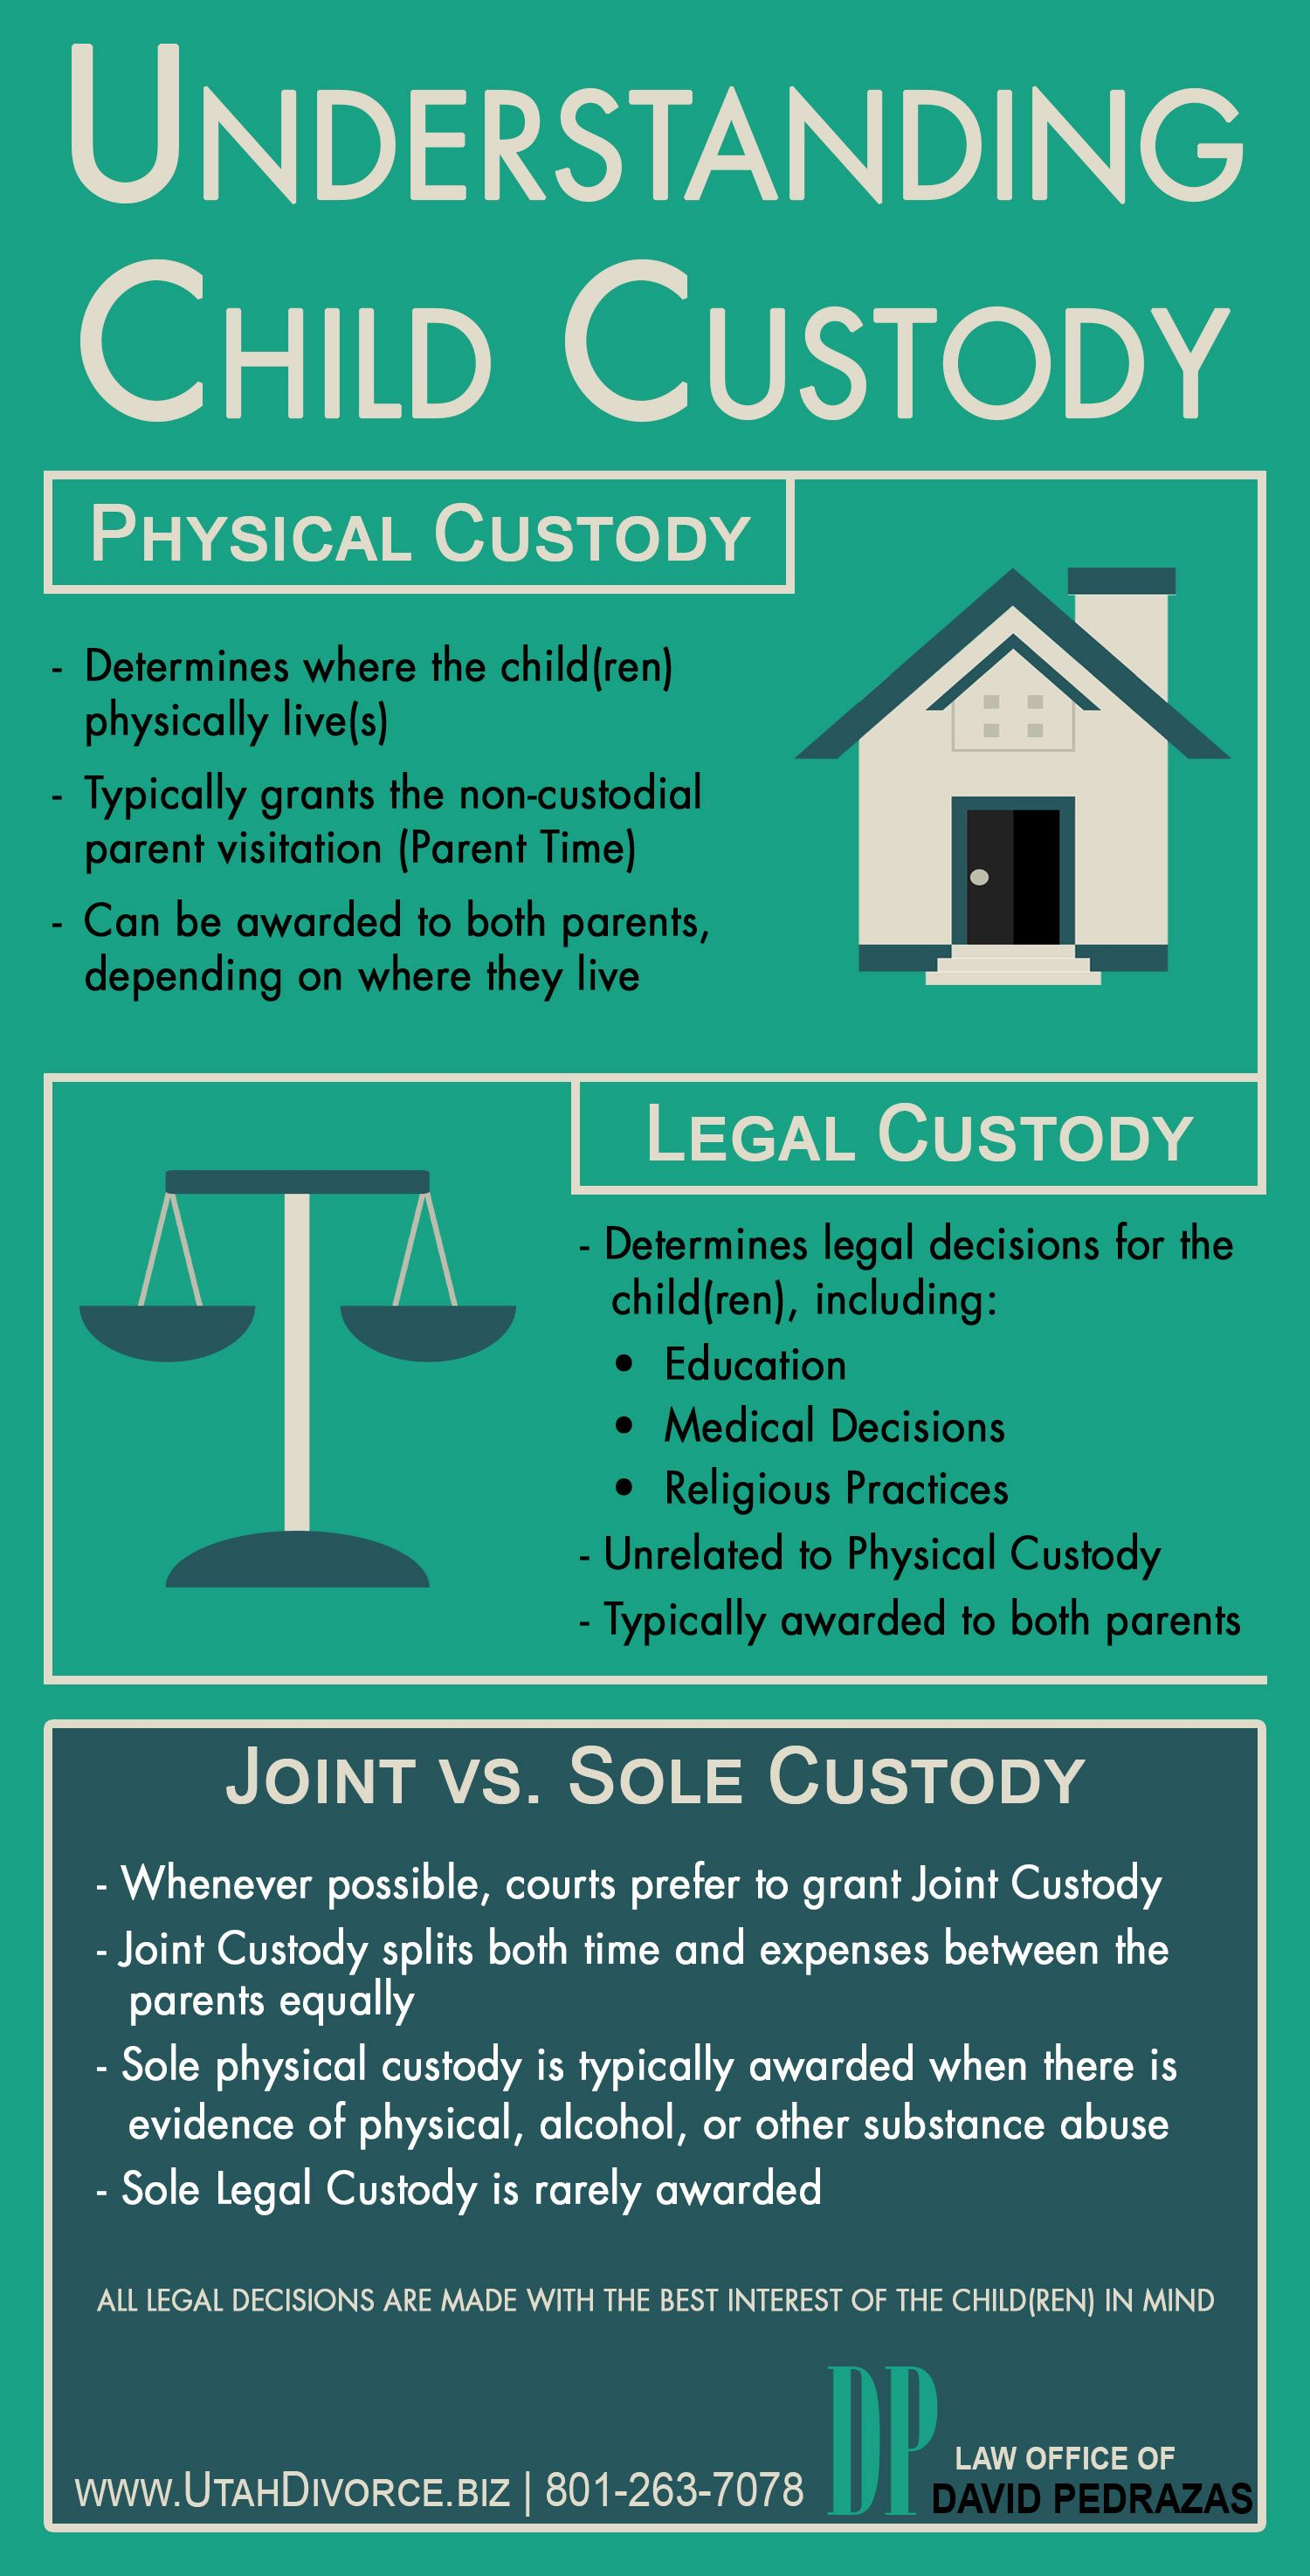 Utah Age of Consent Lawyers